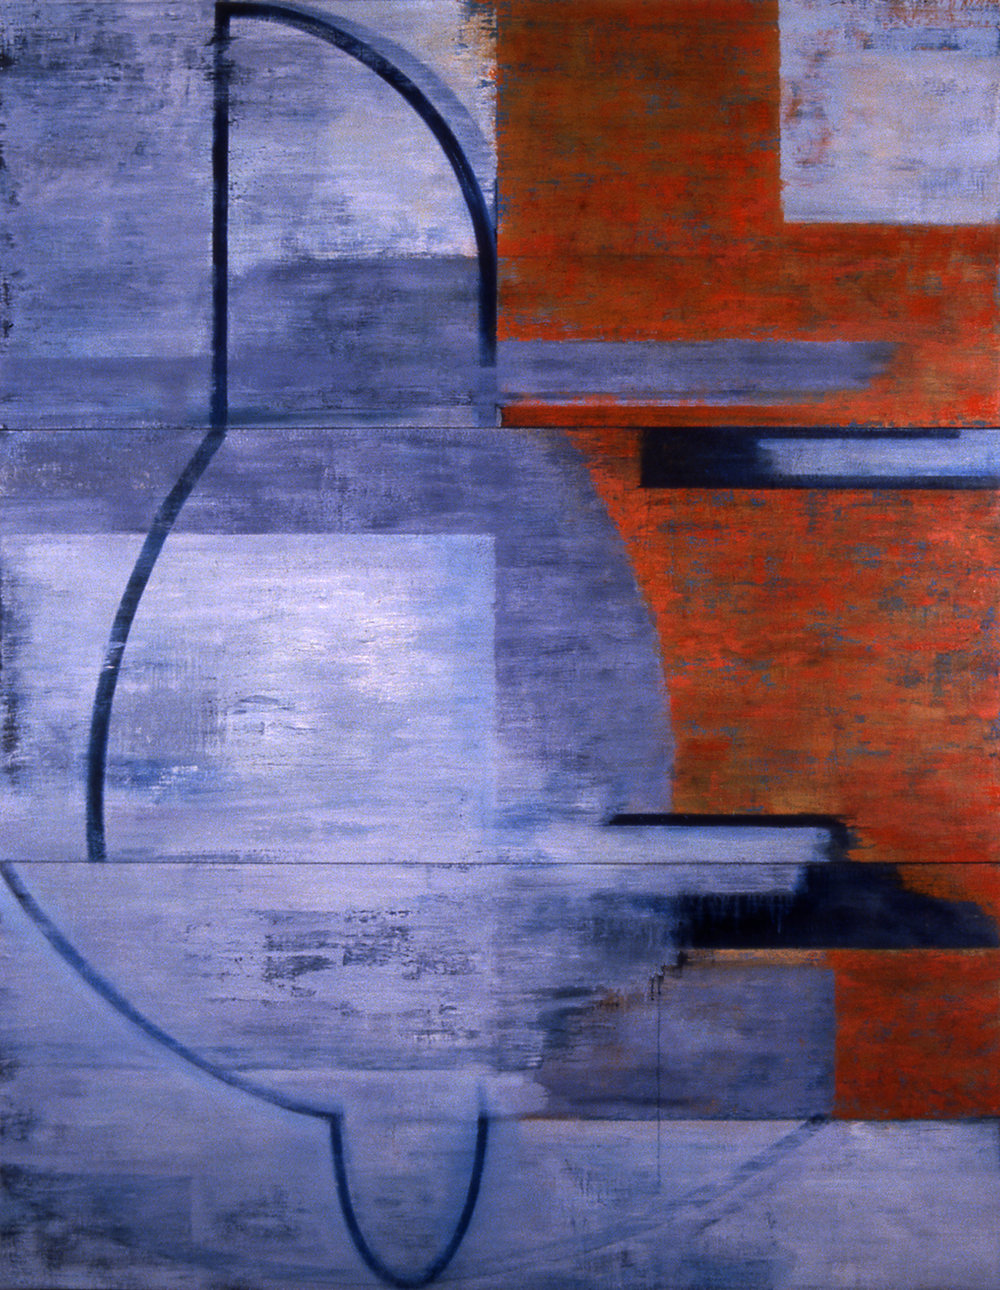 Profile, 1998, Oil, acrylic on canvas over panels, 72 x 54.5 inches.